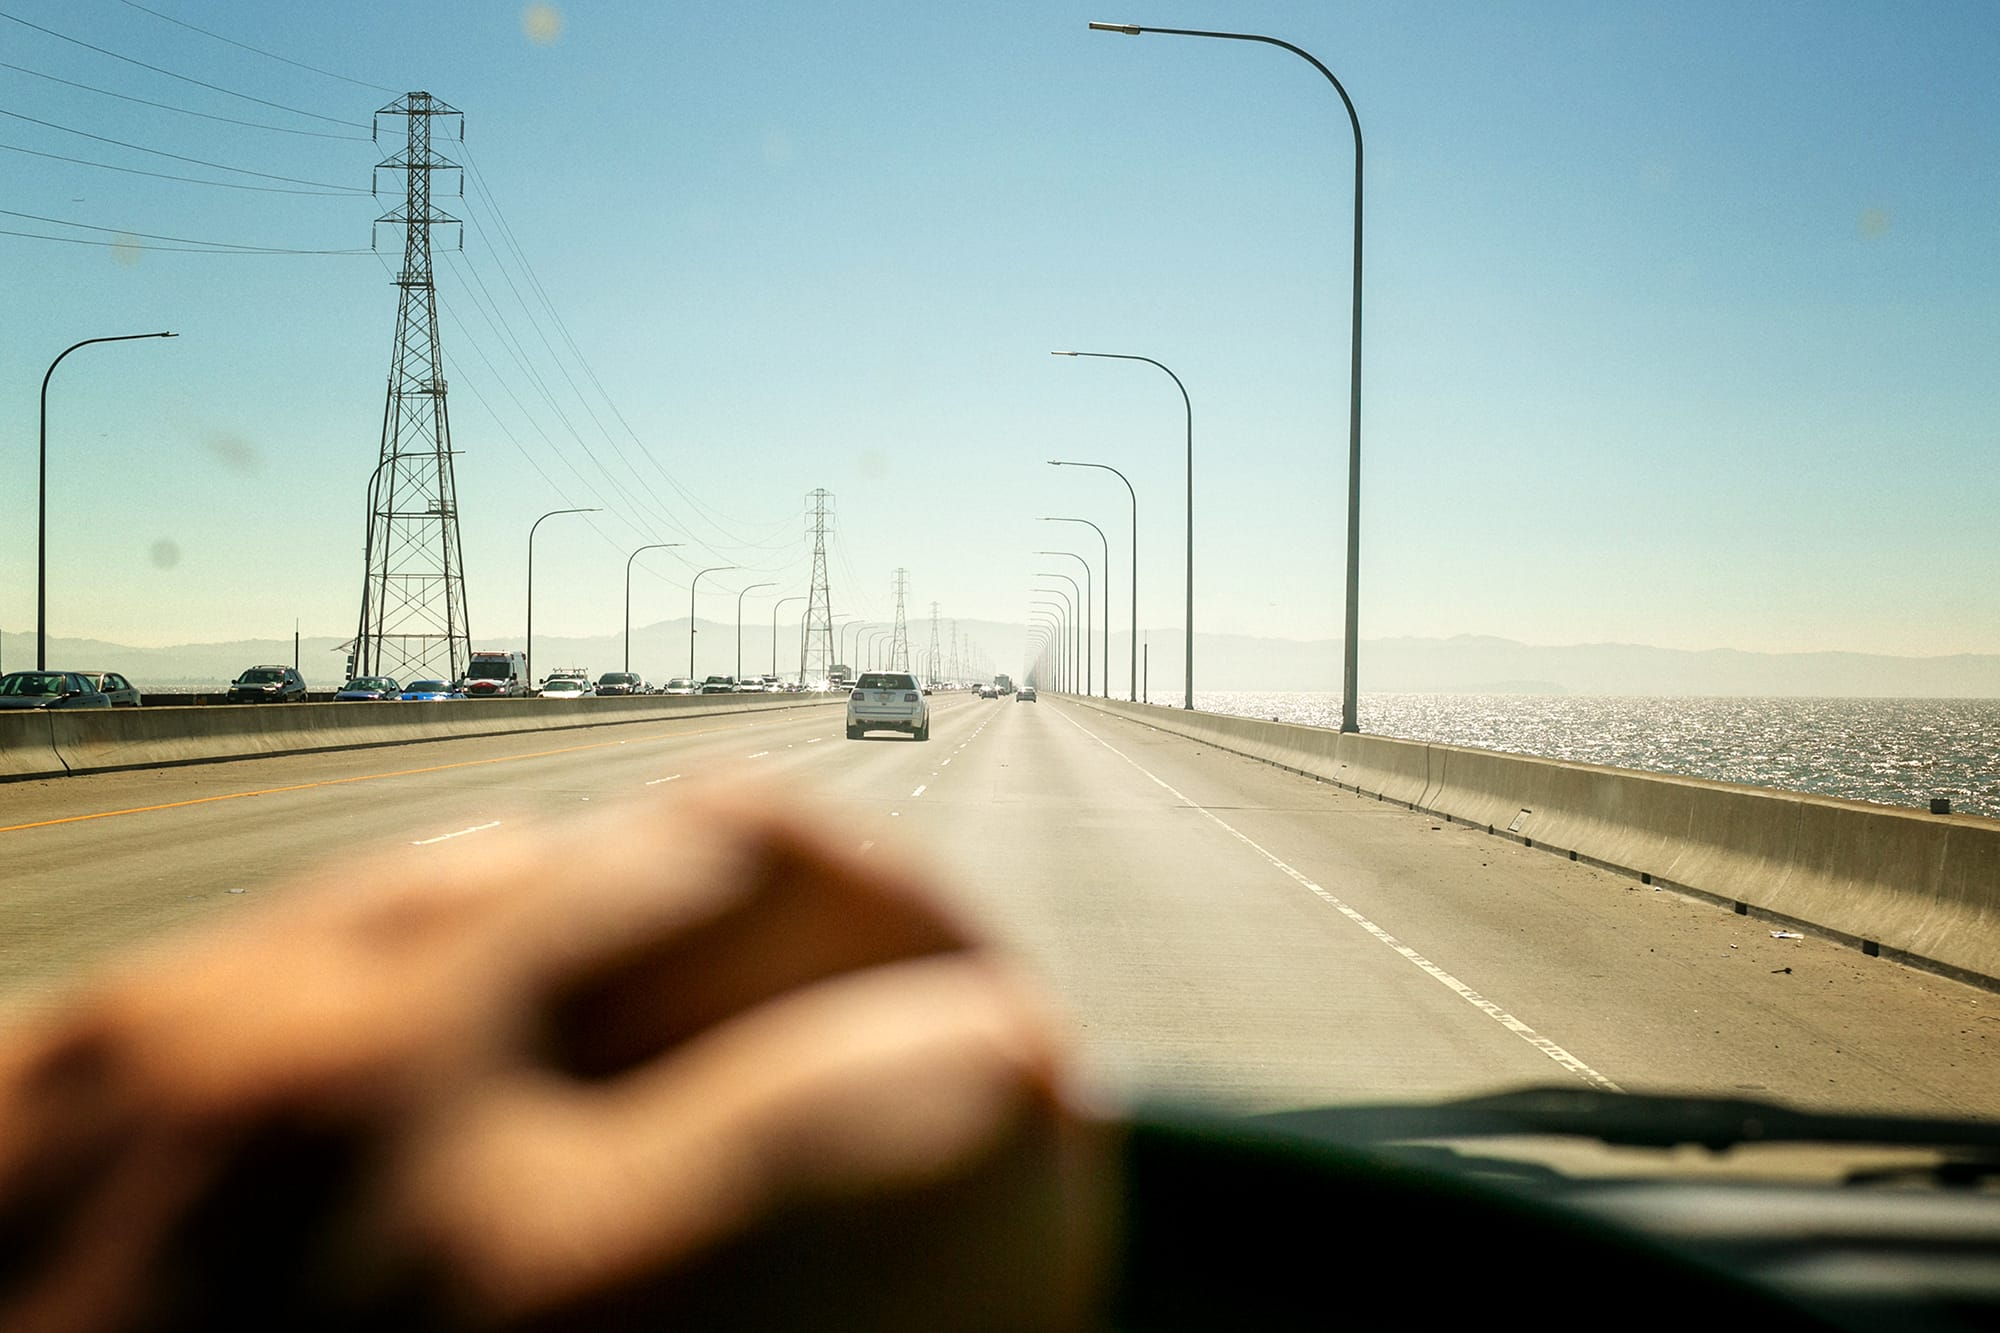 san mateo bridge near san francisco, oakland